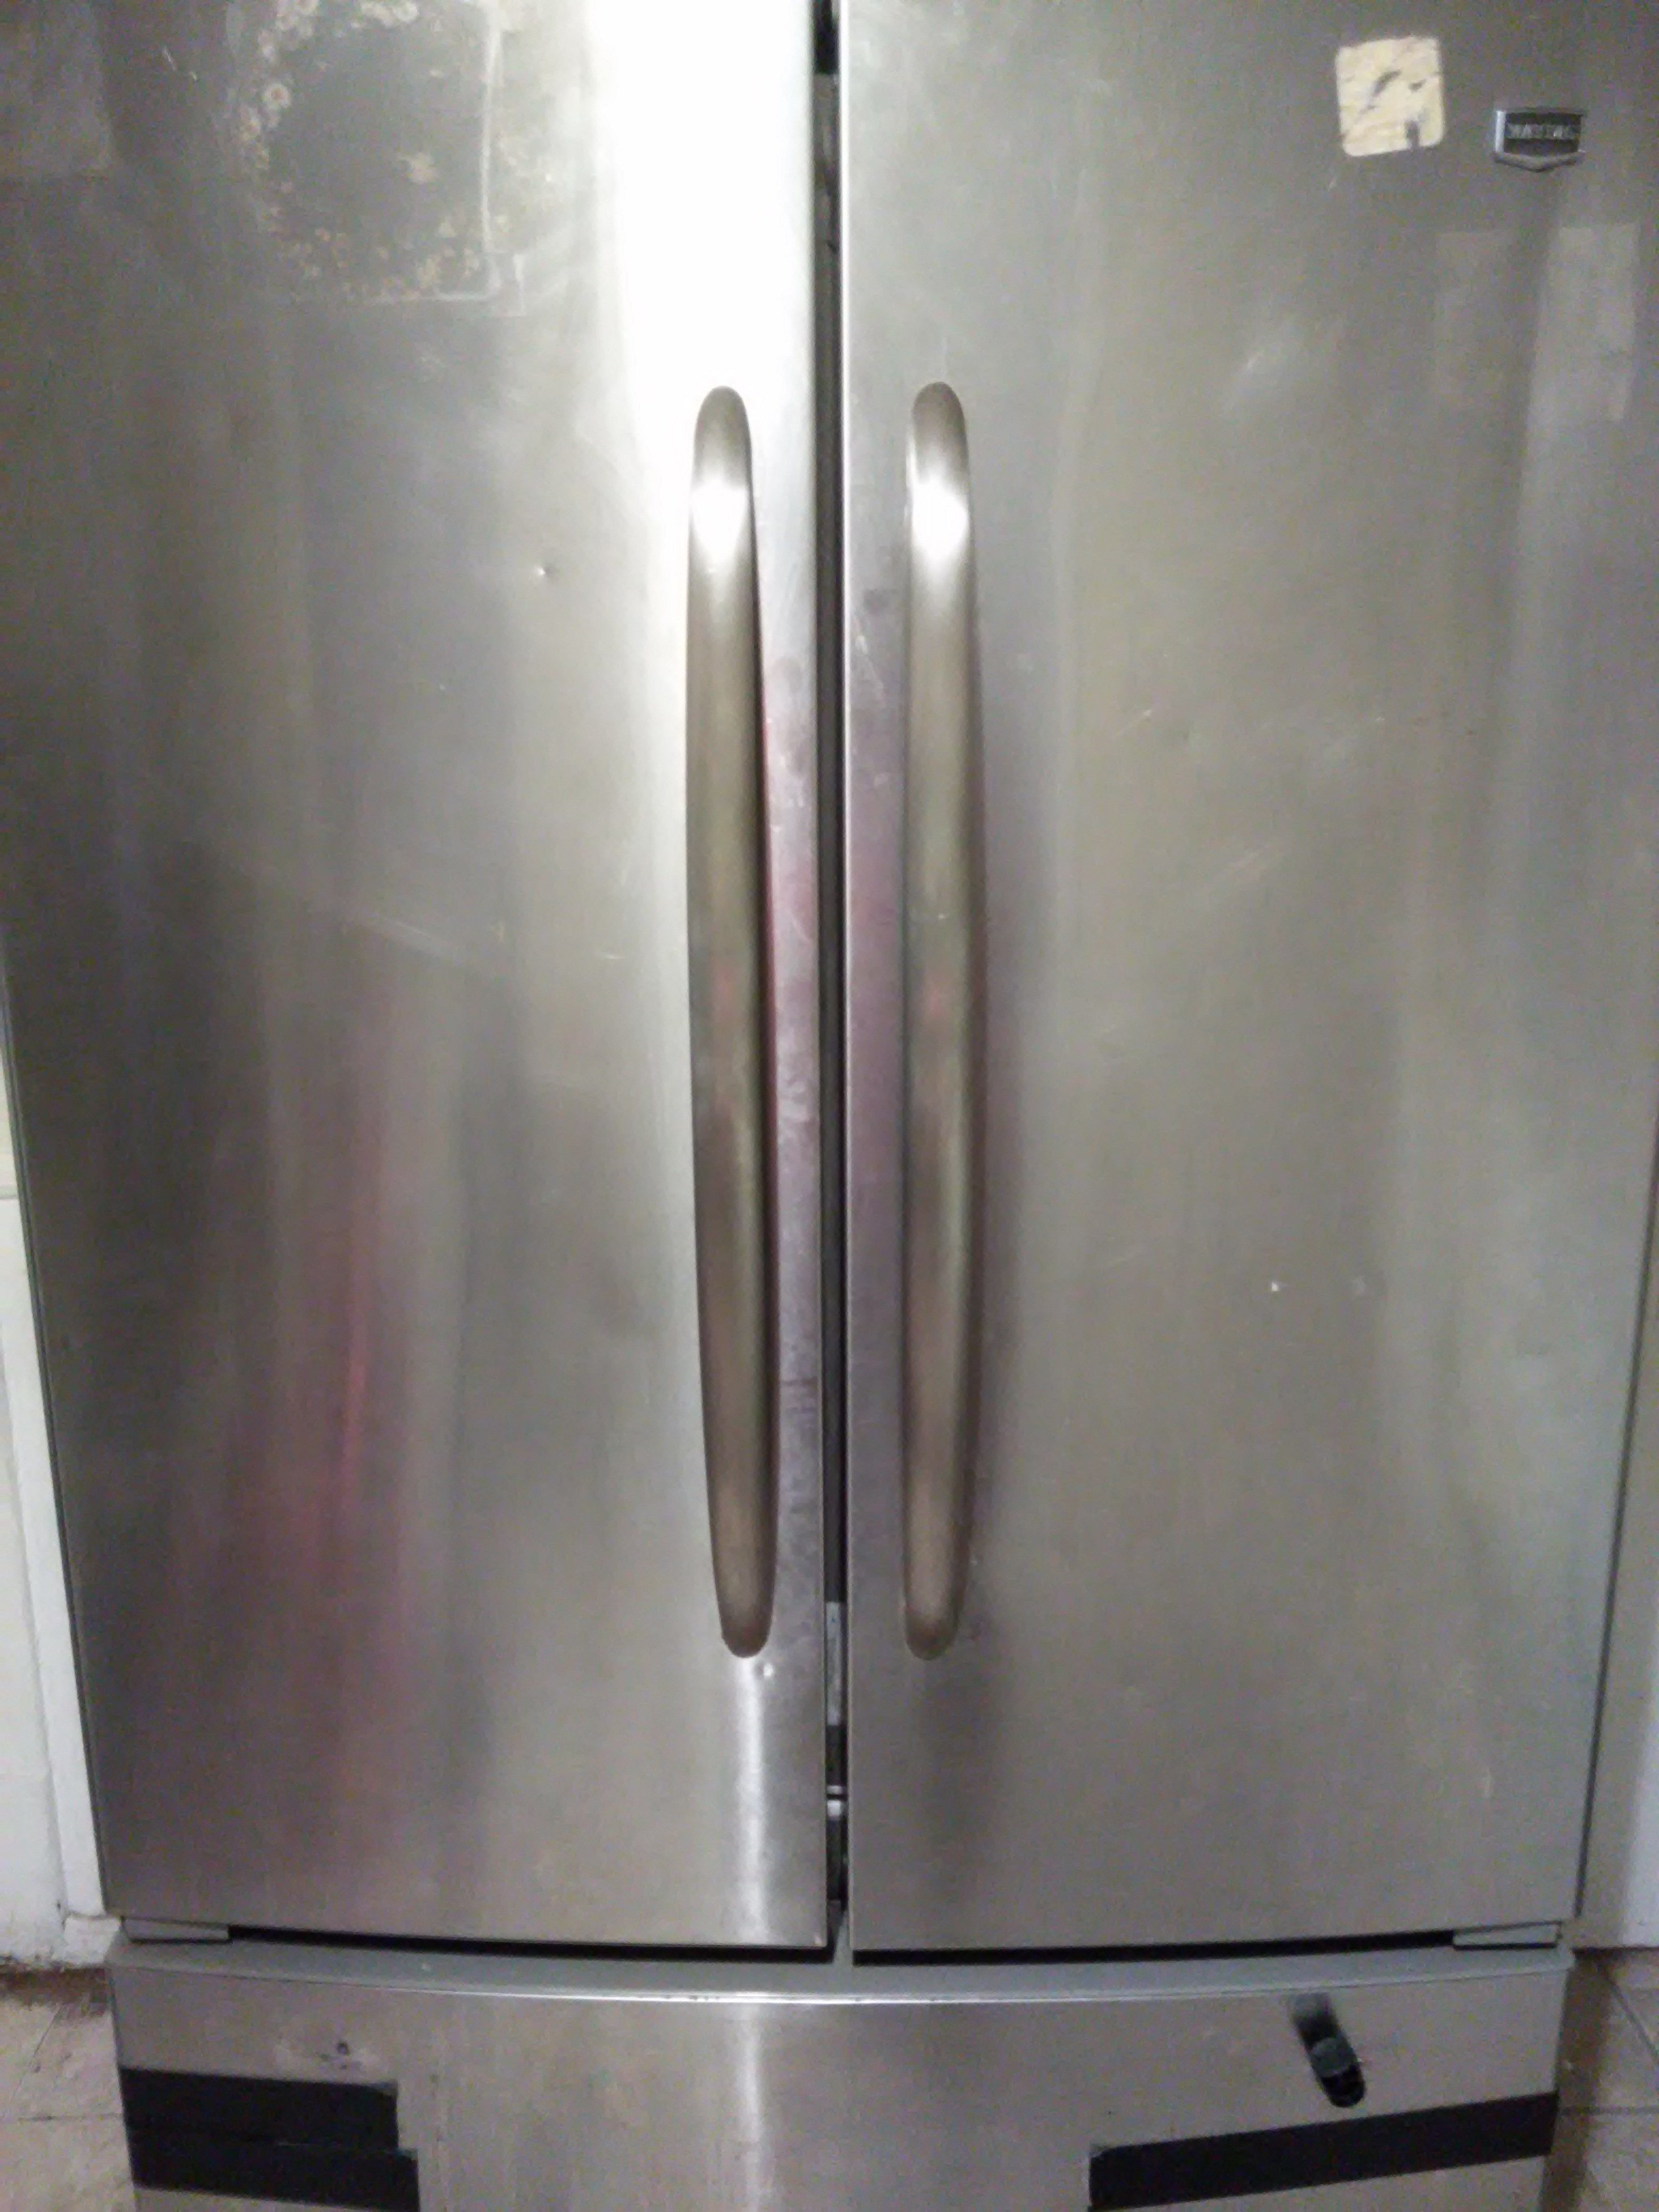 Maytag french door refrigerator reviews - I Purchased My Which I Thought Was A Stainless Steel French Door Refrigerator In 2011 That I Was Getting A Great Product Not Even 3 Months Later I Was